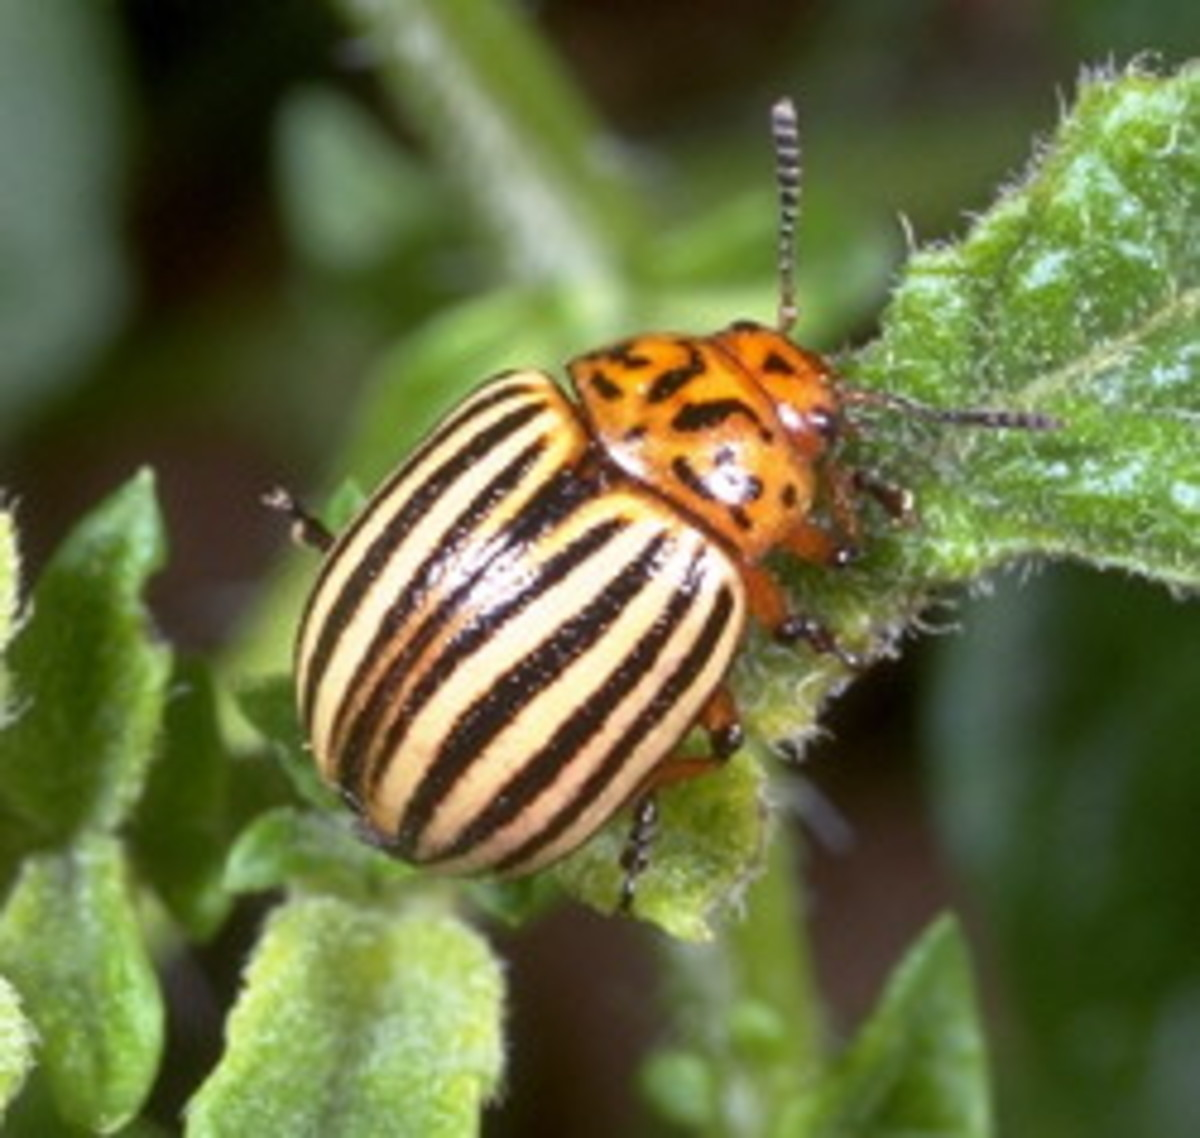 Mature Colorado Potato Beetle